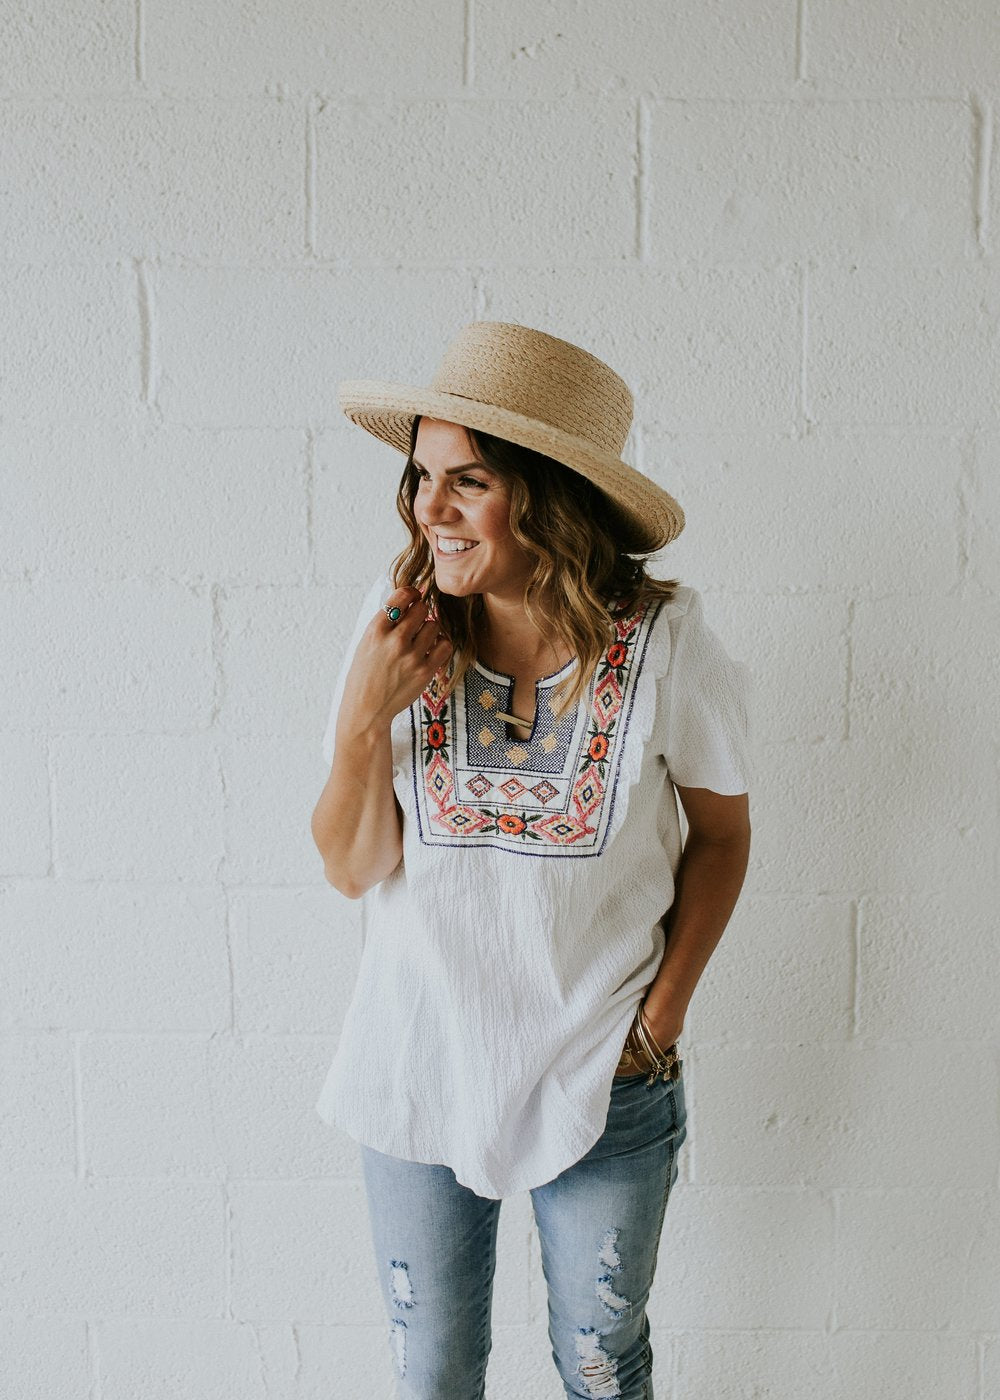 Summer Outfit Inspo | ROOLEE